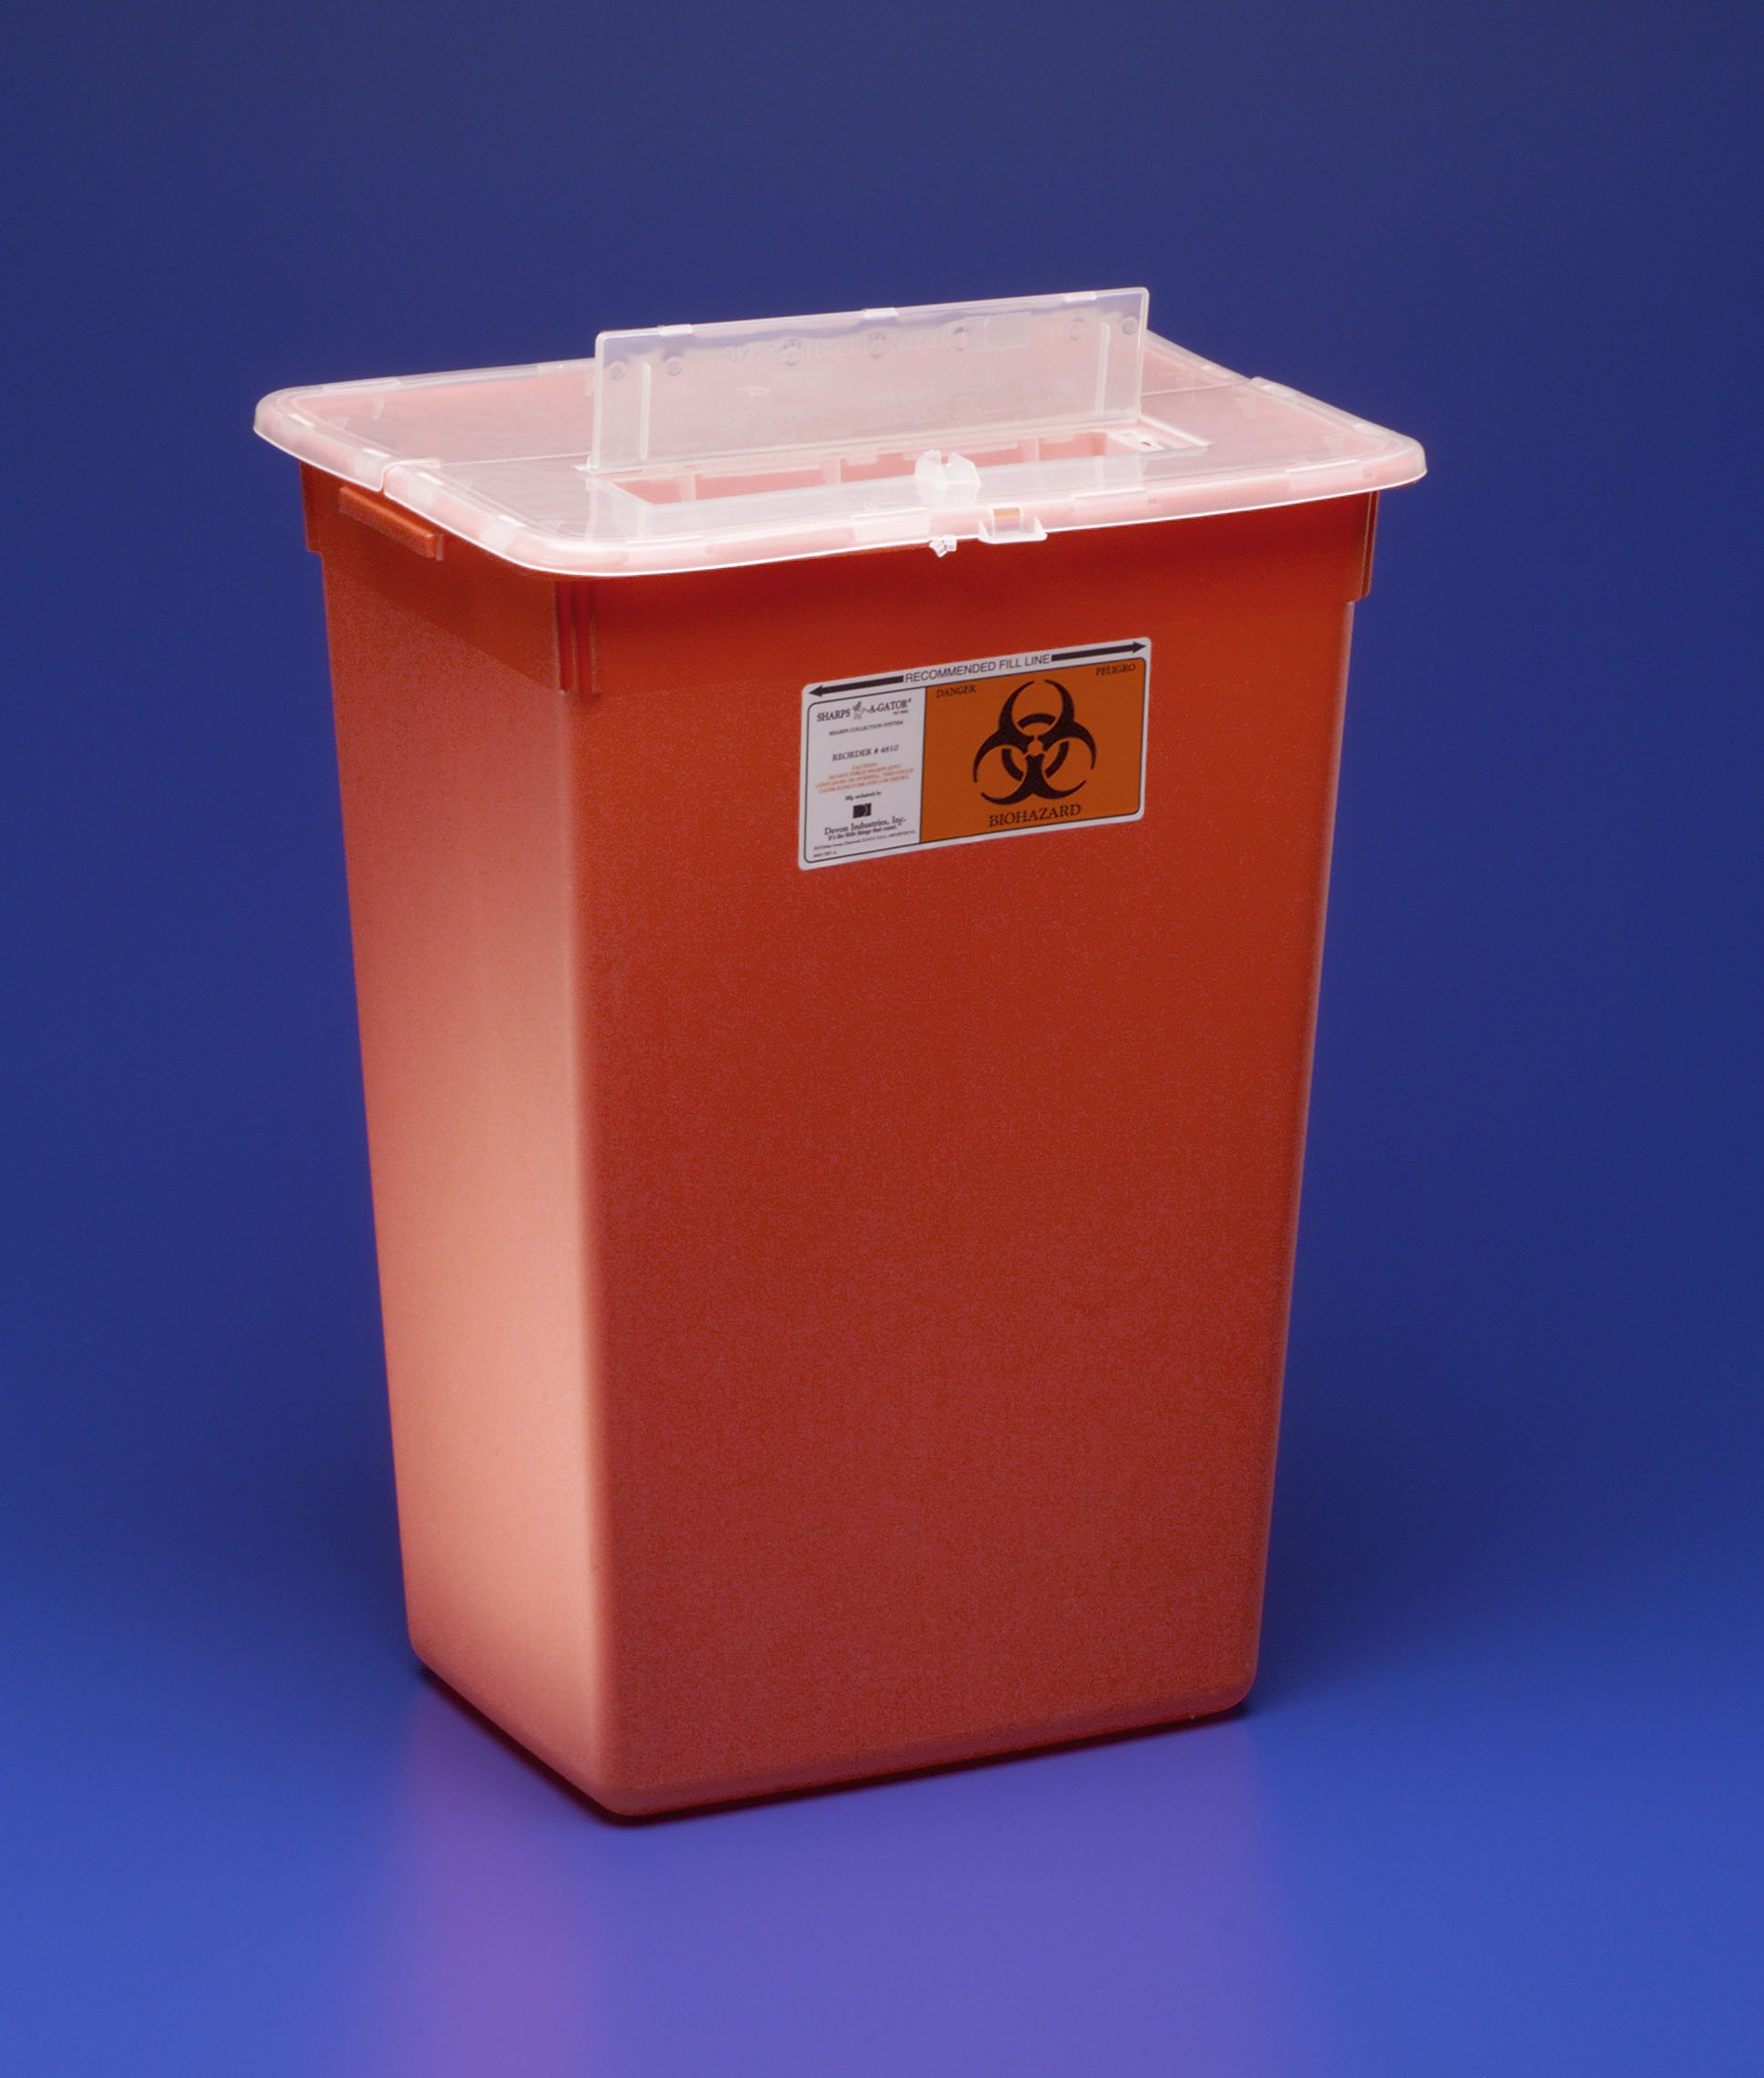 Sharps Container, Sharps-A-Gator 1-Piece 15-1/2 H X 21-1/2 W X 12 D Inch 10 Gallon Red Vertical Entry Lid, 31143665 - EACH